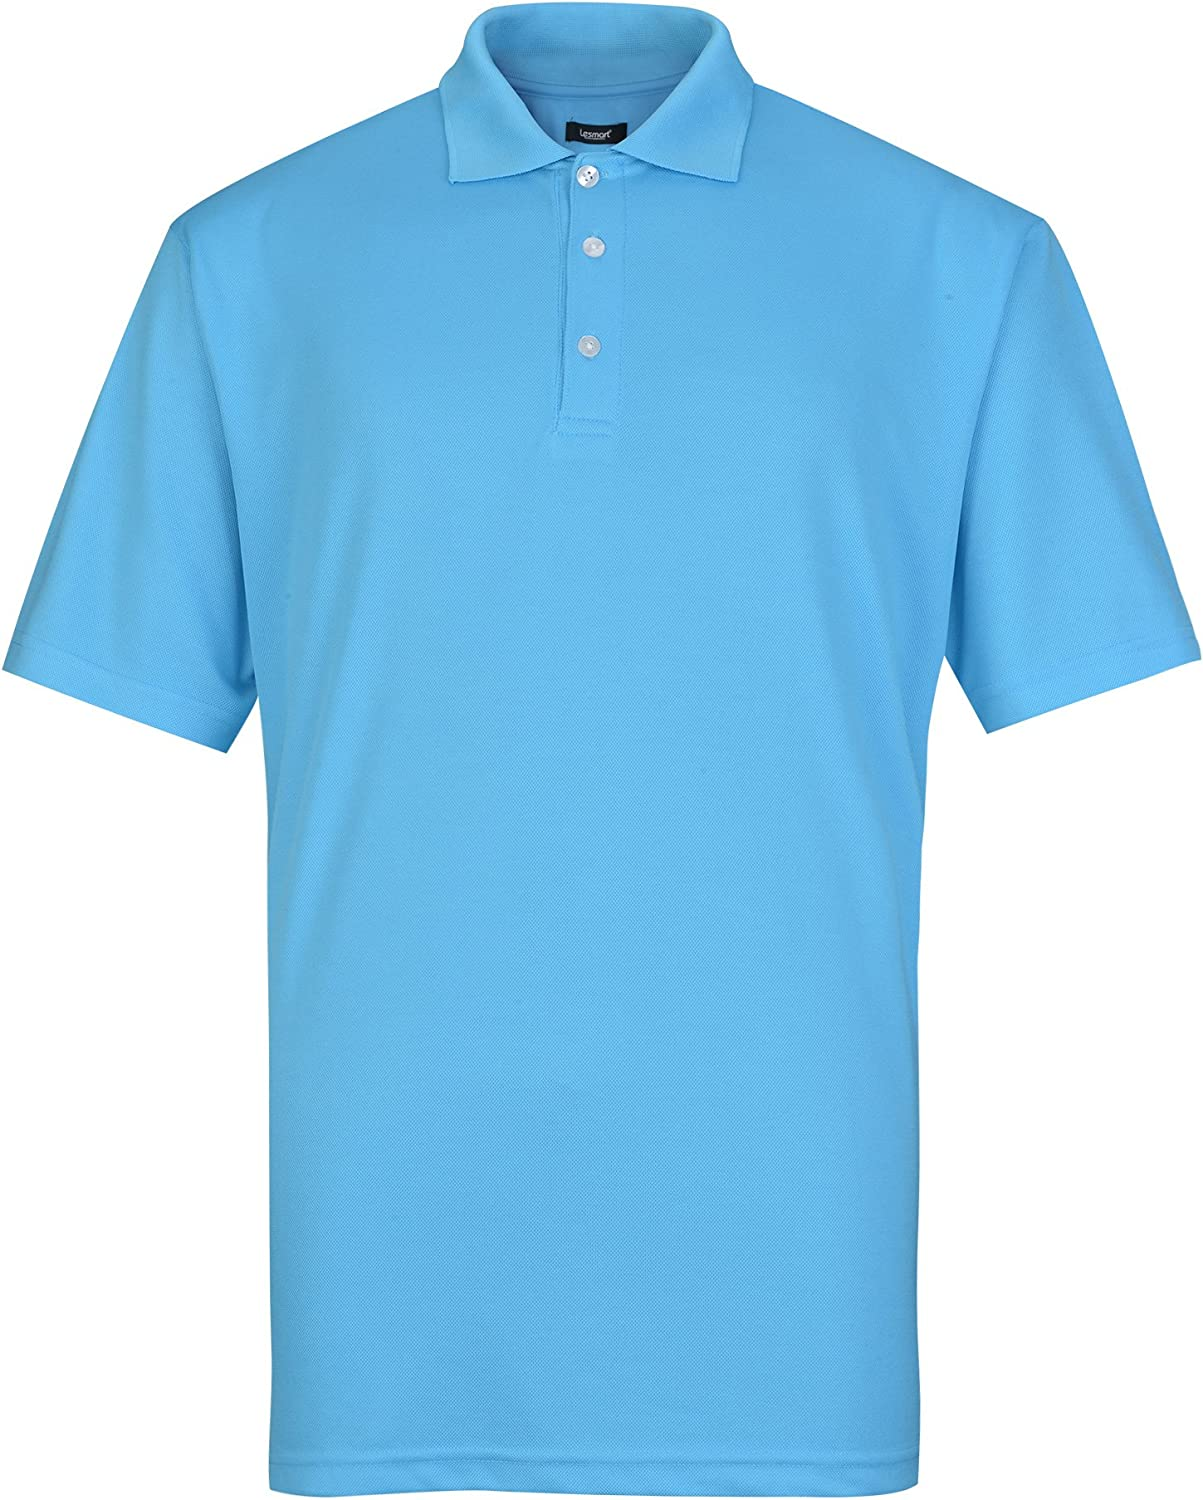 Lesmart Men's Golf Polo Shirt Performance Wicking Dry 日本正規代理店品 Fit お求めやすく価格改定 Short